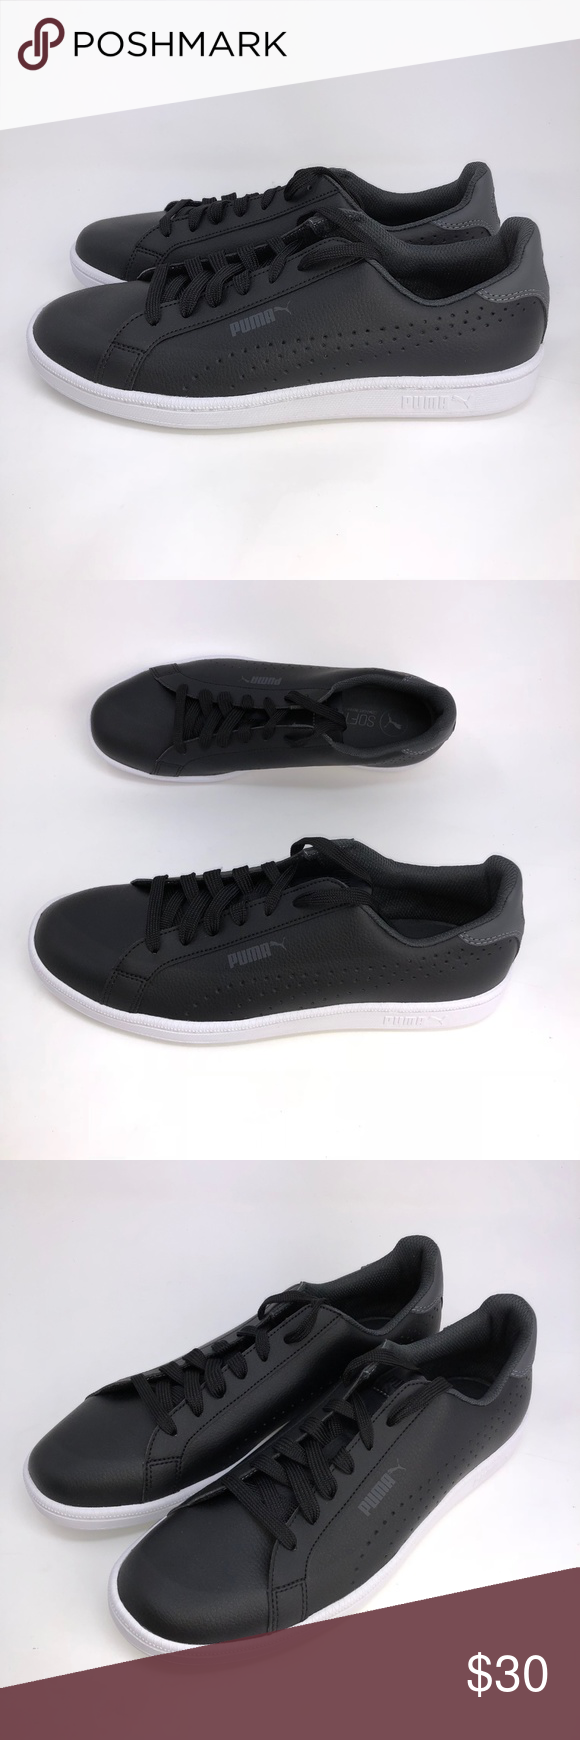 Puma Smash Perf C Men s Sneaker Black Puma Smash Perf C Men s Sneaker  Classic Tennis Shoes Black Size 9.5-10 Leather Upper Rubber Outsole  Softfoam Insole ... 225b1497d